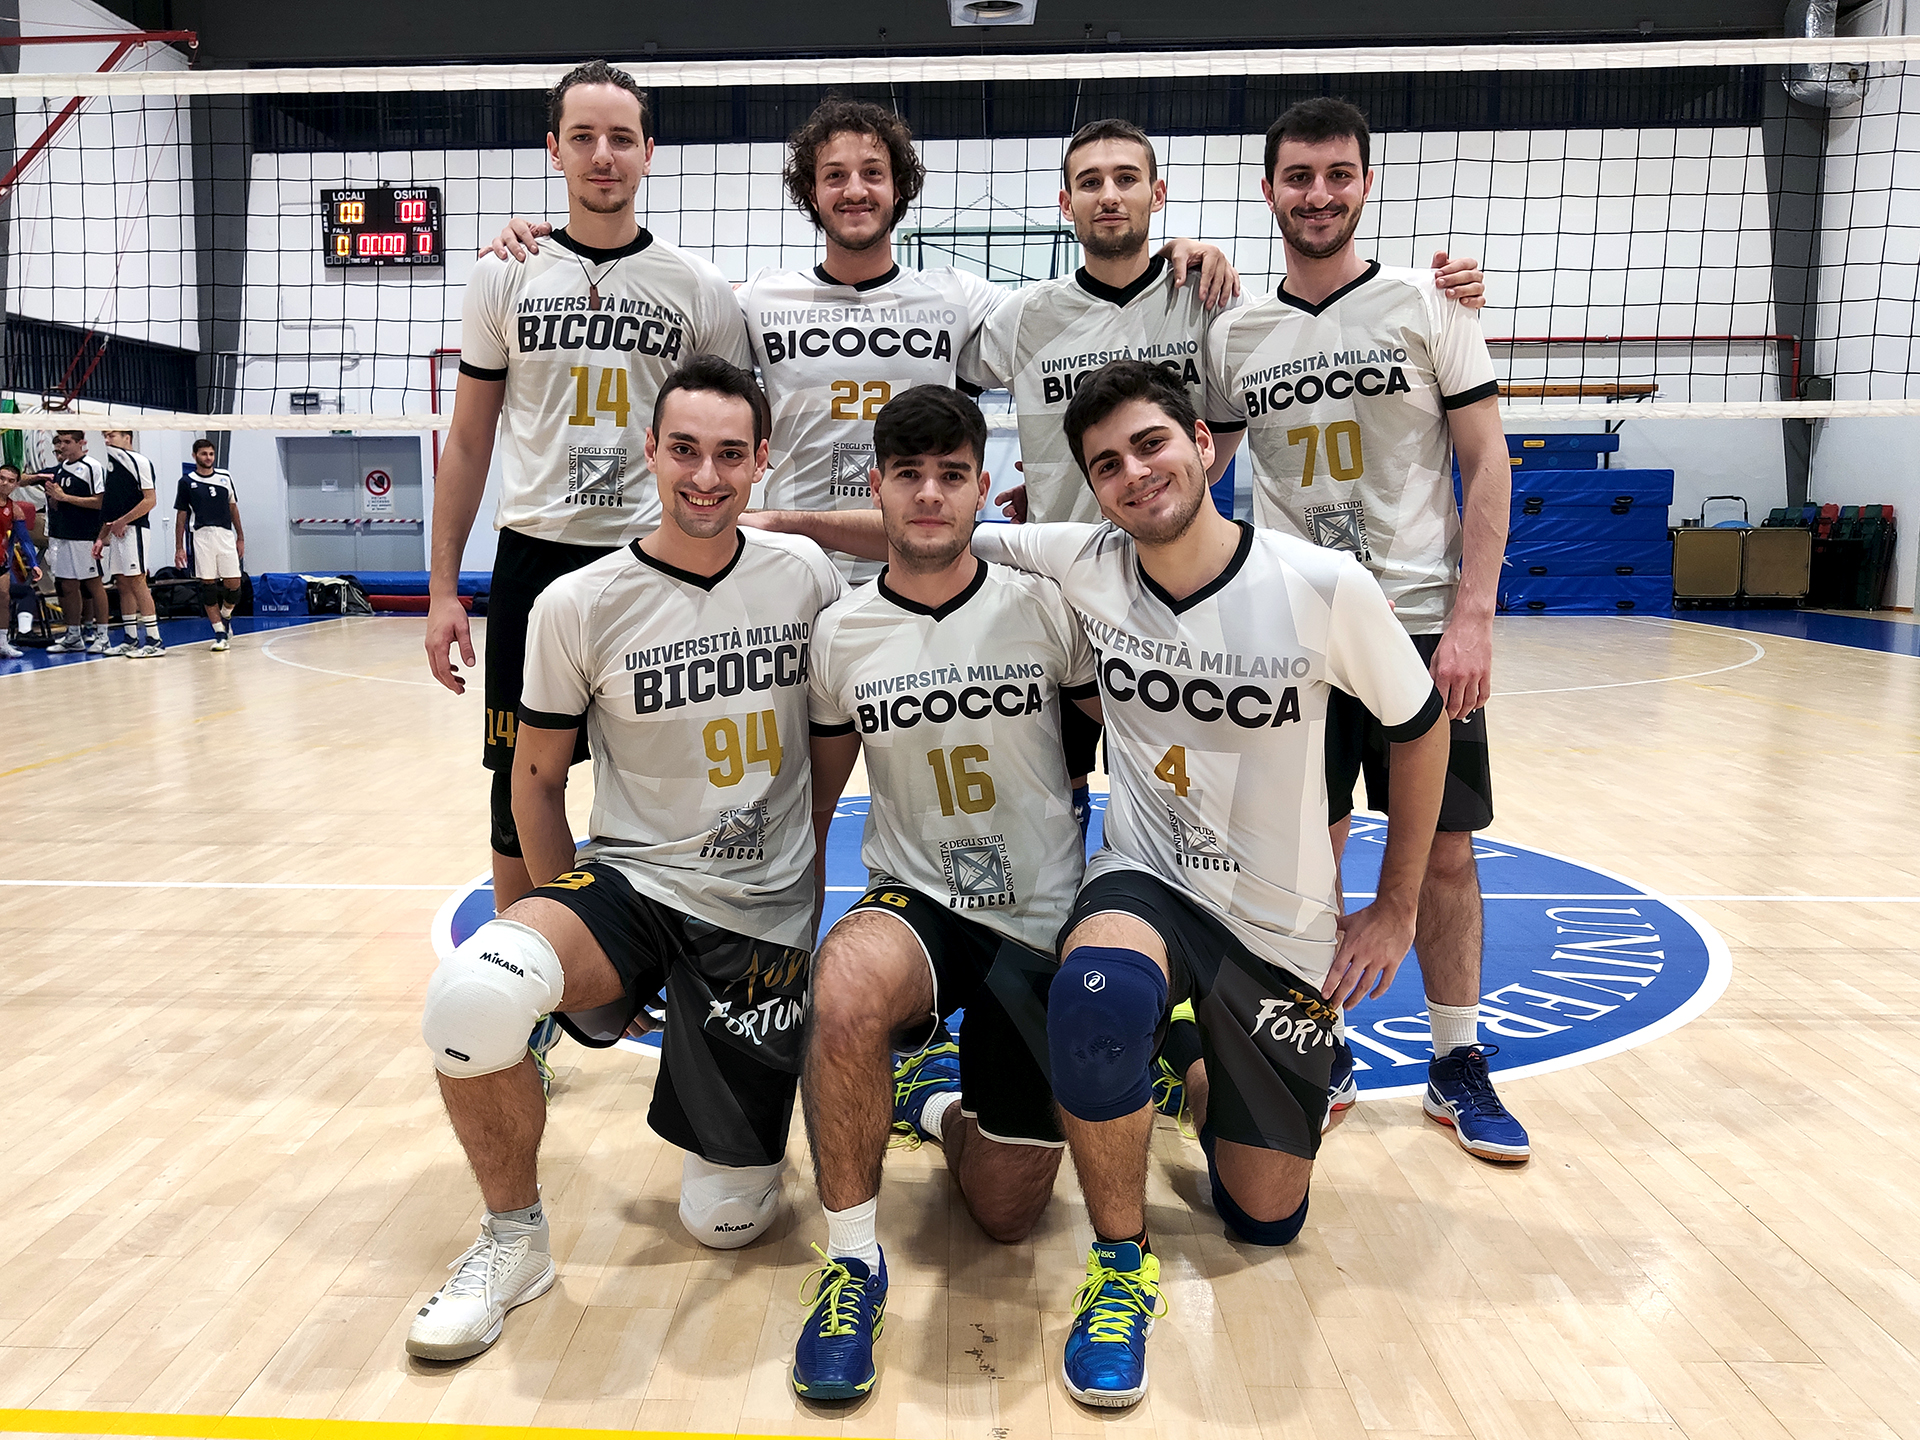 CUS Bicocca • volley maschile 2019/20 • universitario